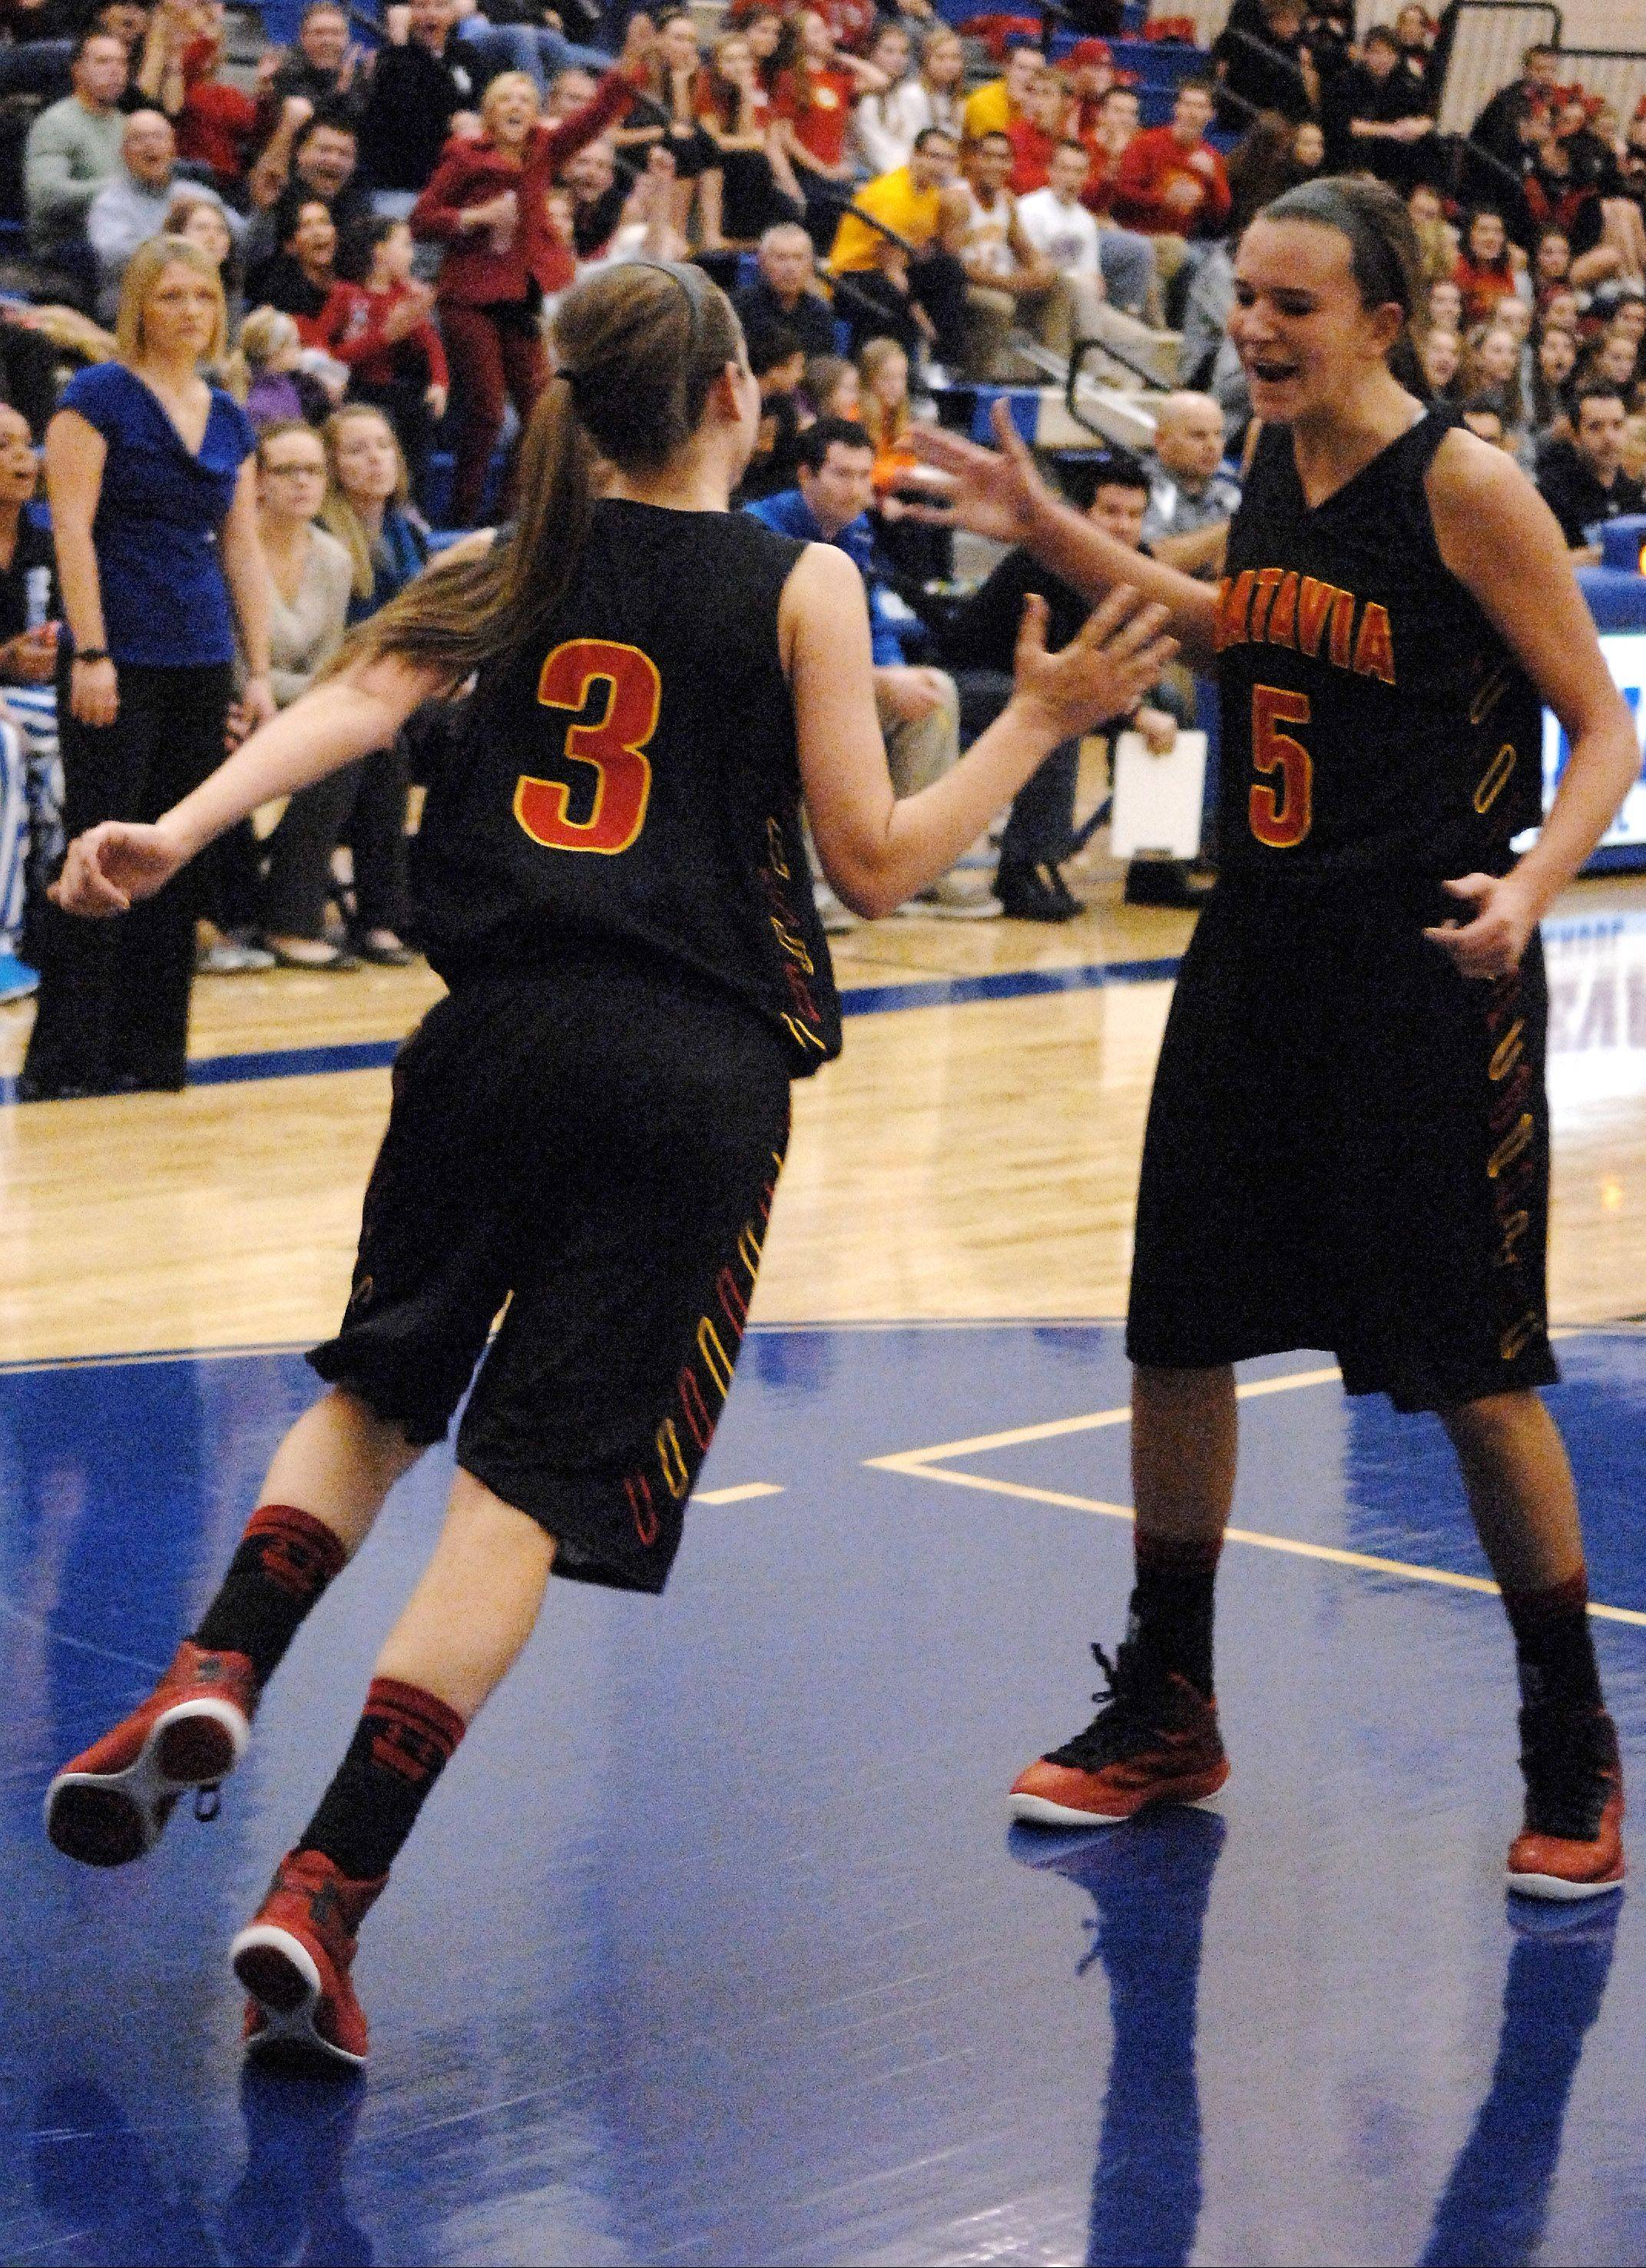 Batavia's Liza Fruendt, right, congratulates Bethany Orman after a basket Friday against Geneva. Orman is one of two freshmen who have been a big part of the team's 5-3 start.